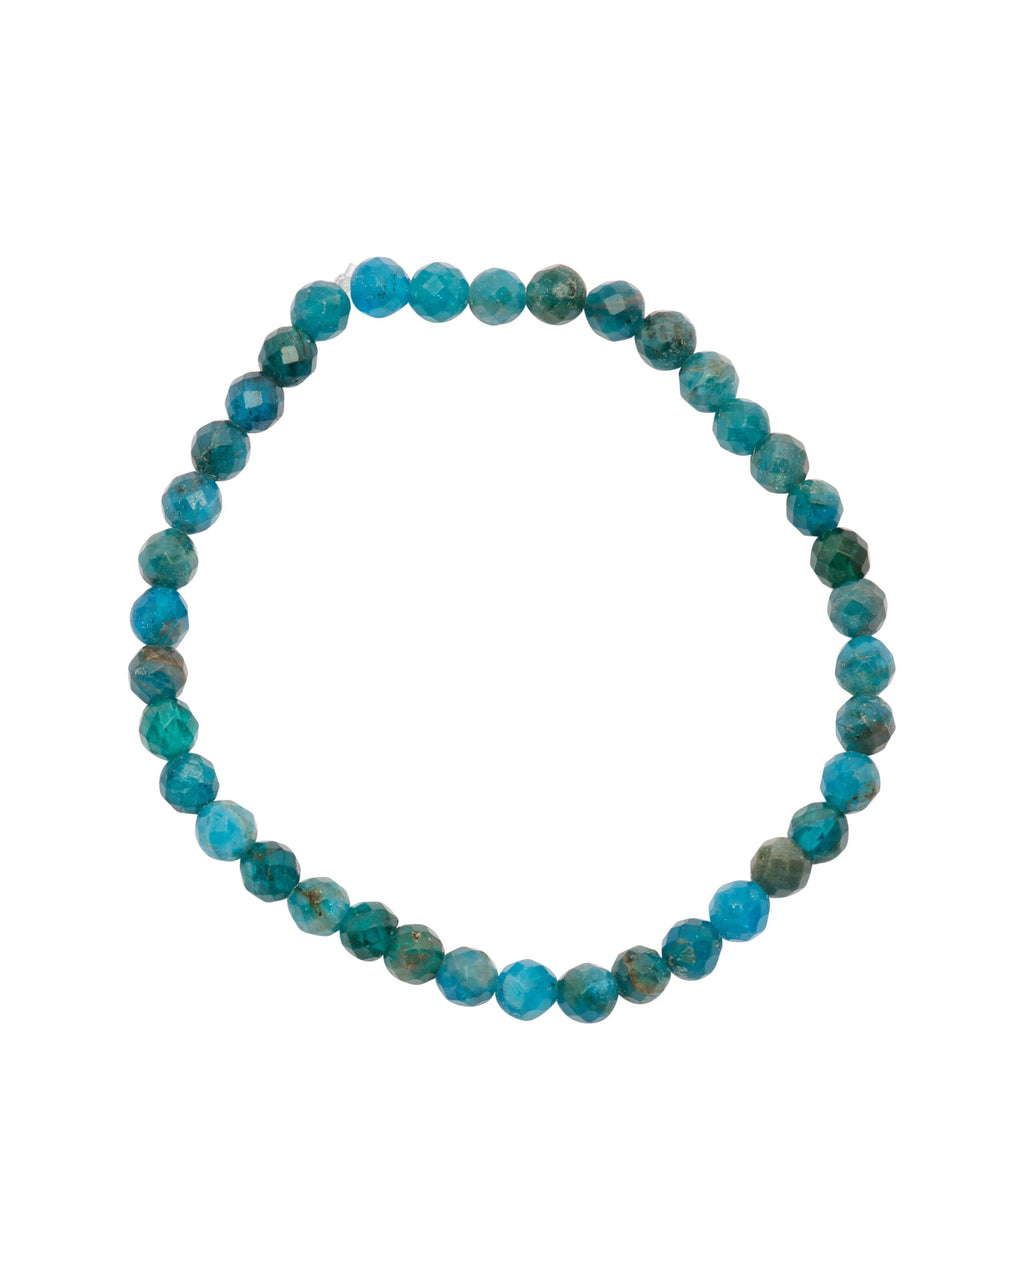 Neon Apatite Faceted - PRATT DADDY